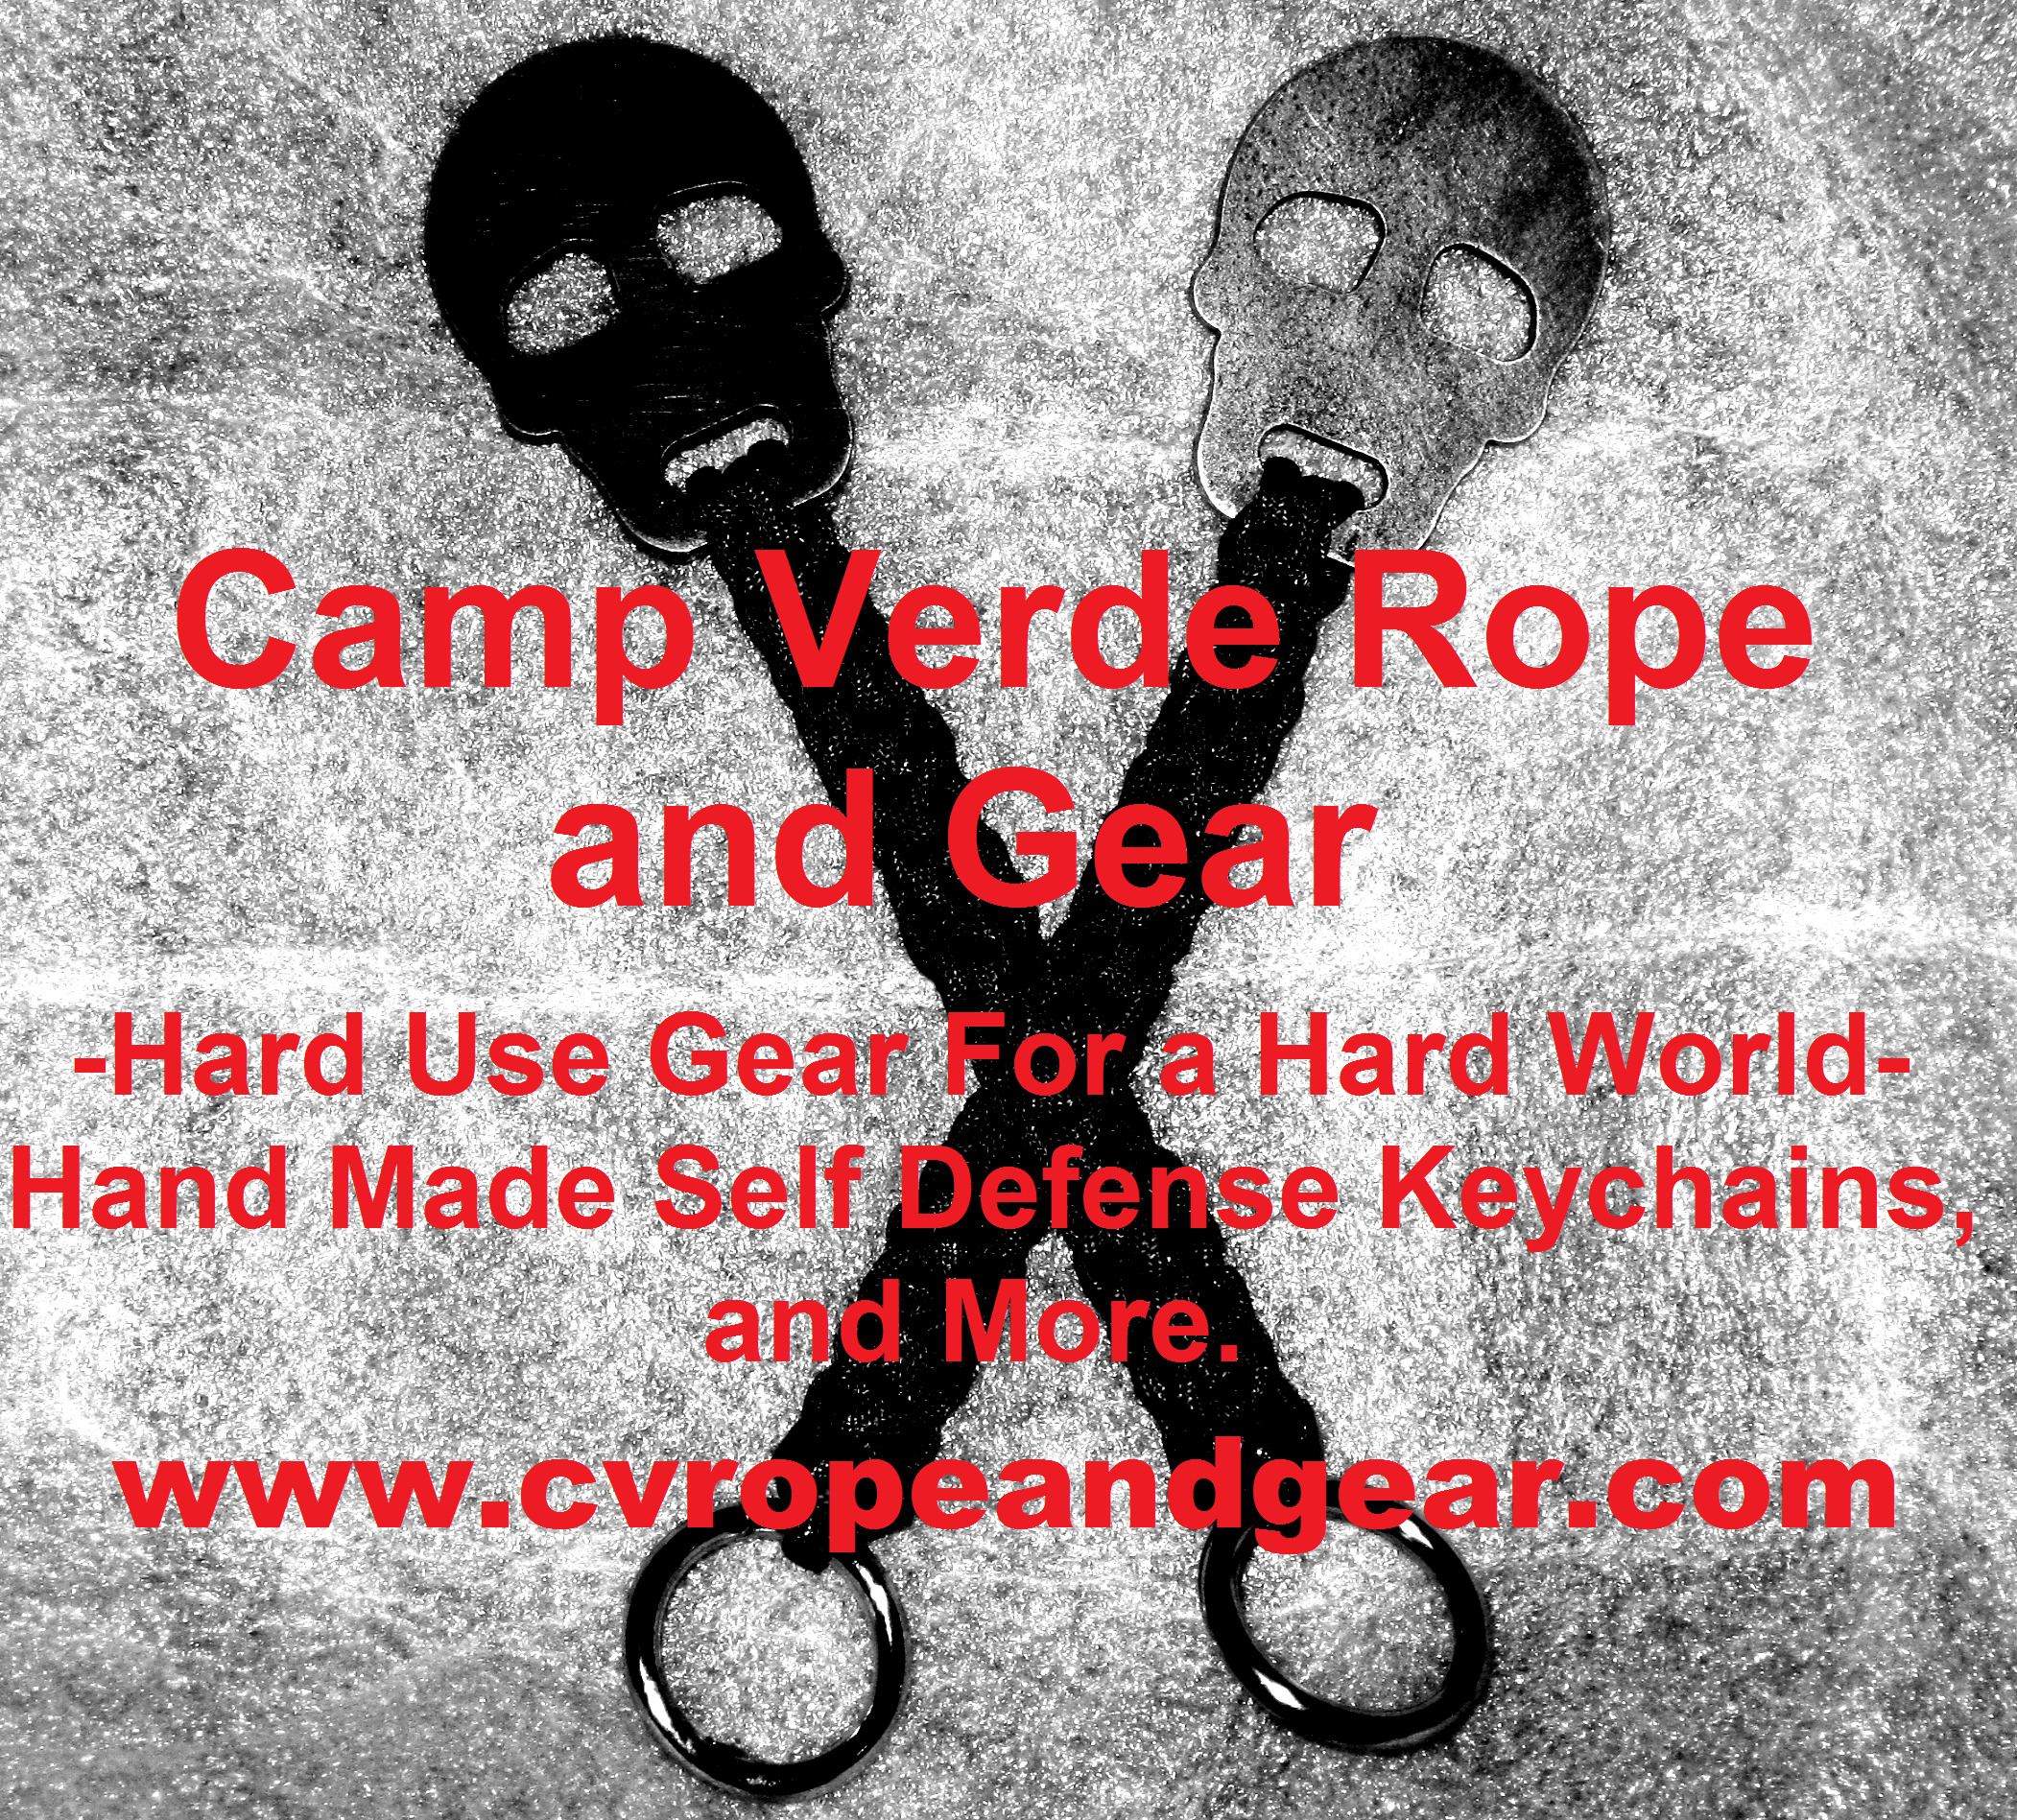 come visit camp verde rope and gear for unique hand made self